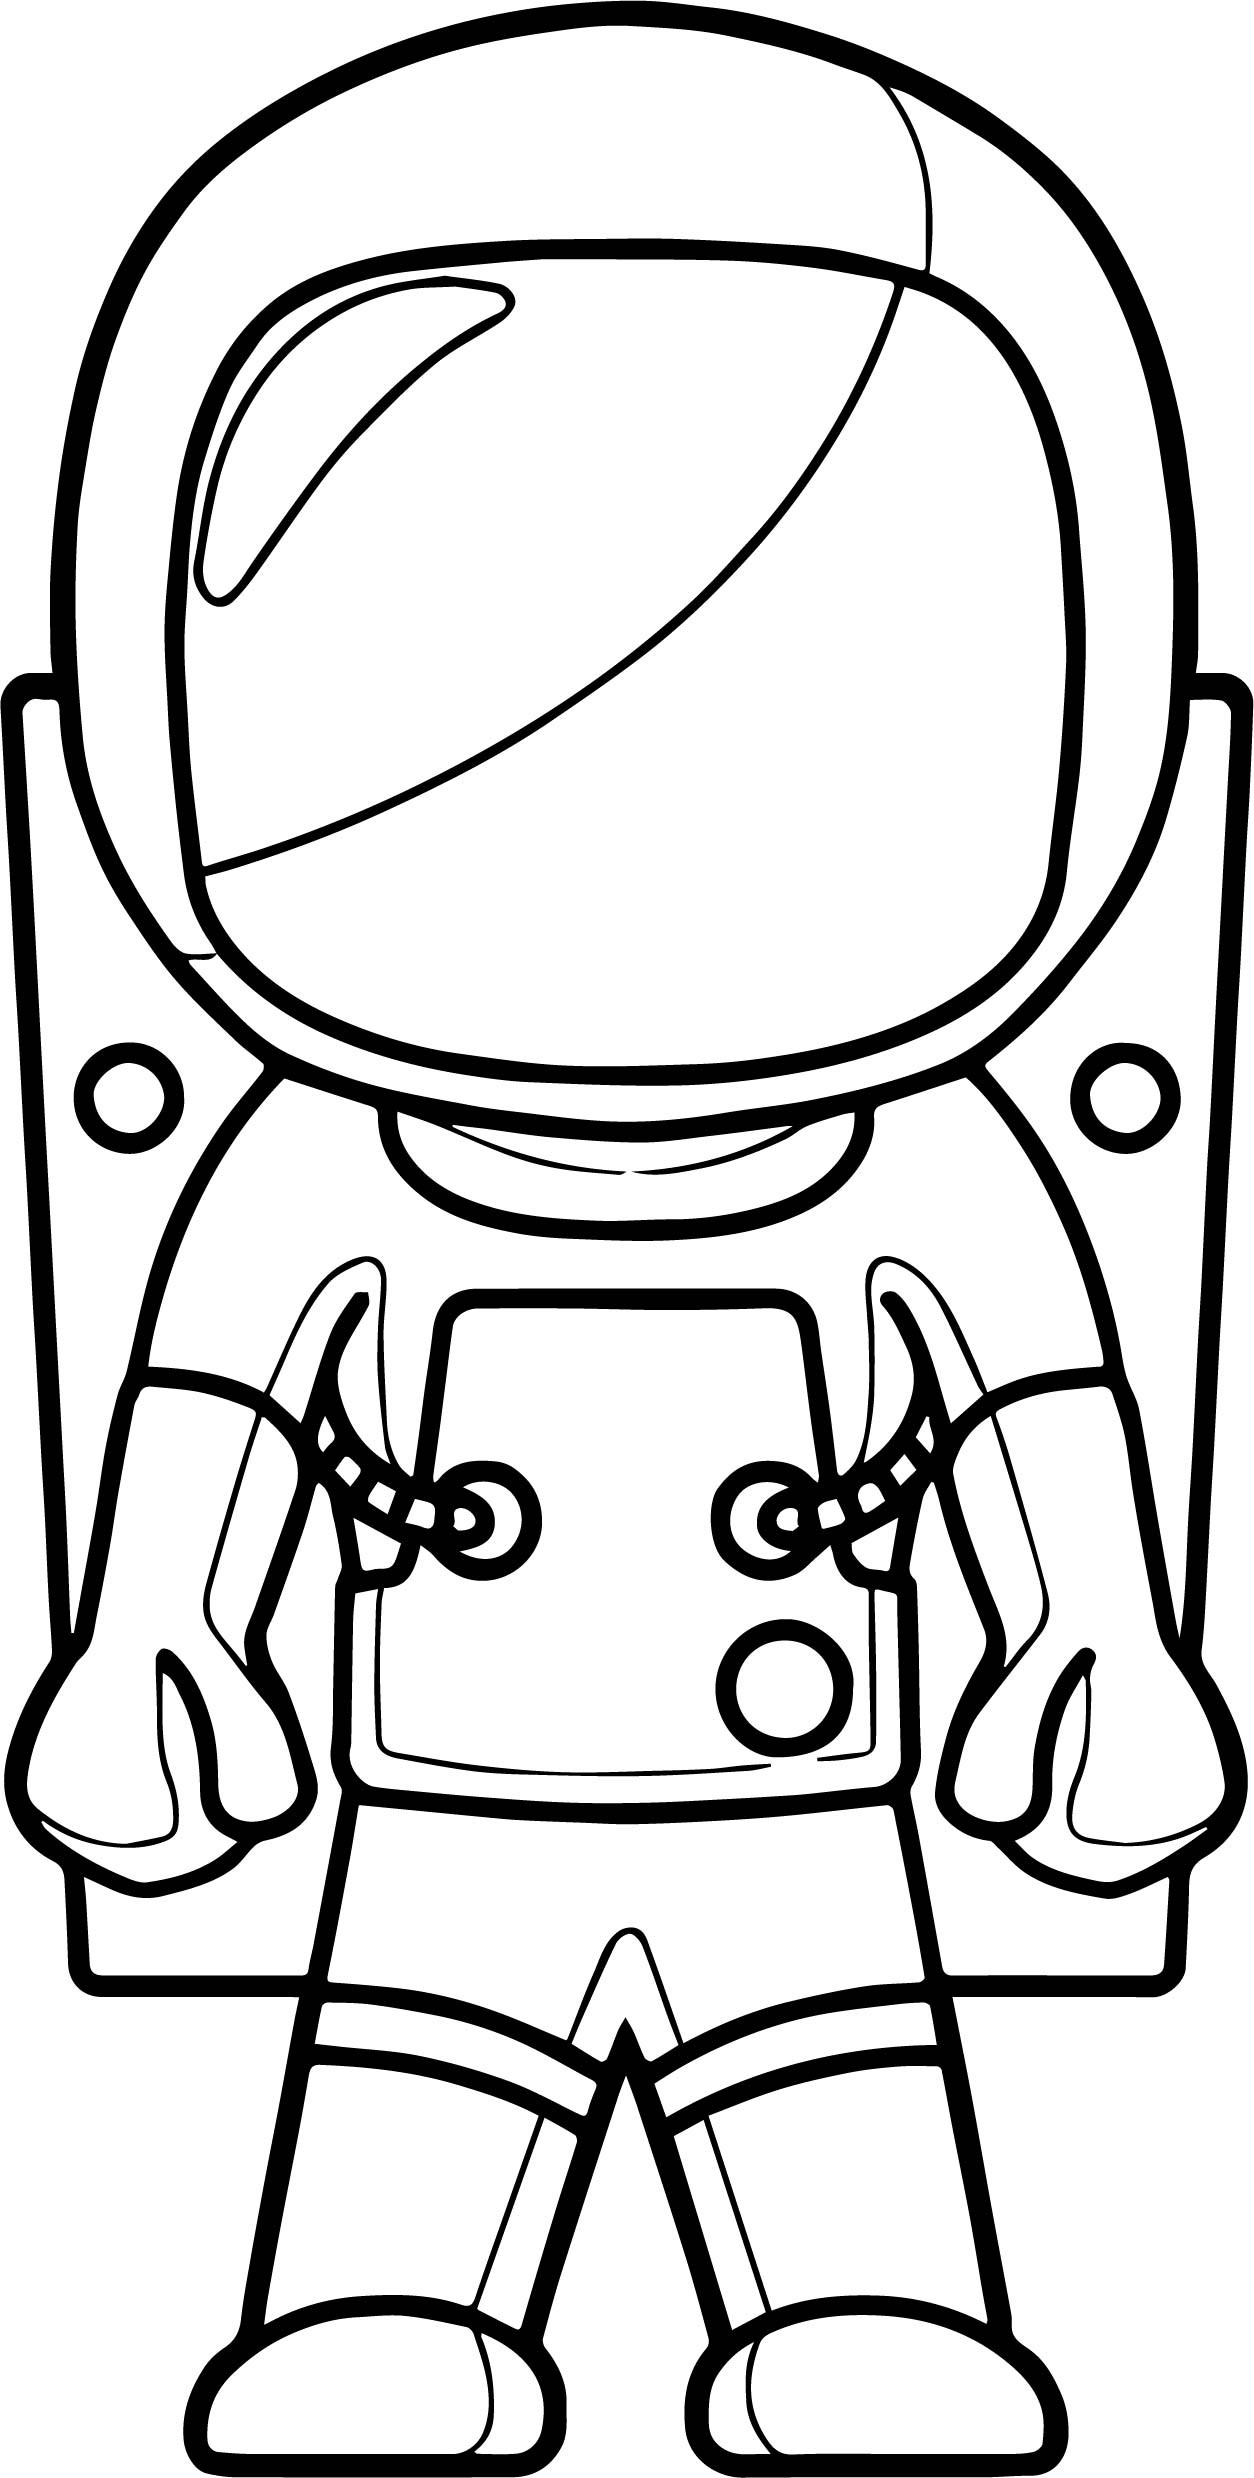 coloring picture of astronaut printable astronaut coloring pages for kids cool2bkids of coloring astronaut picture